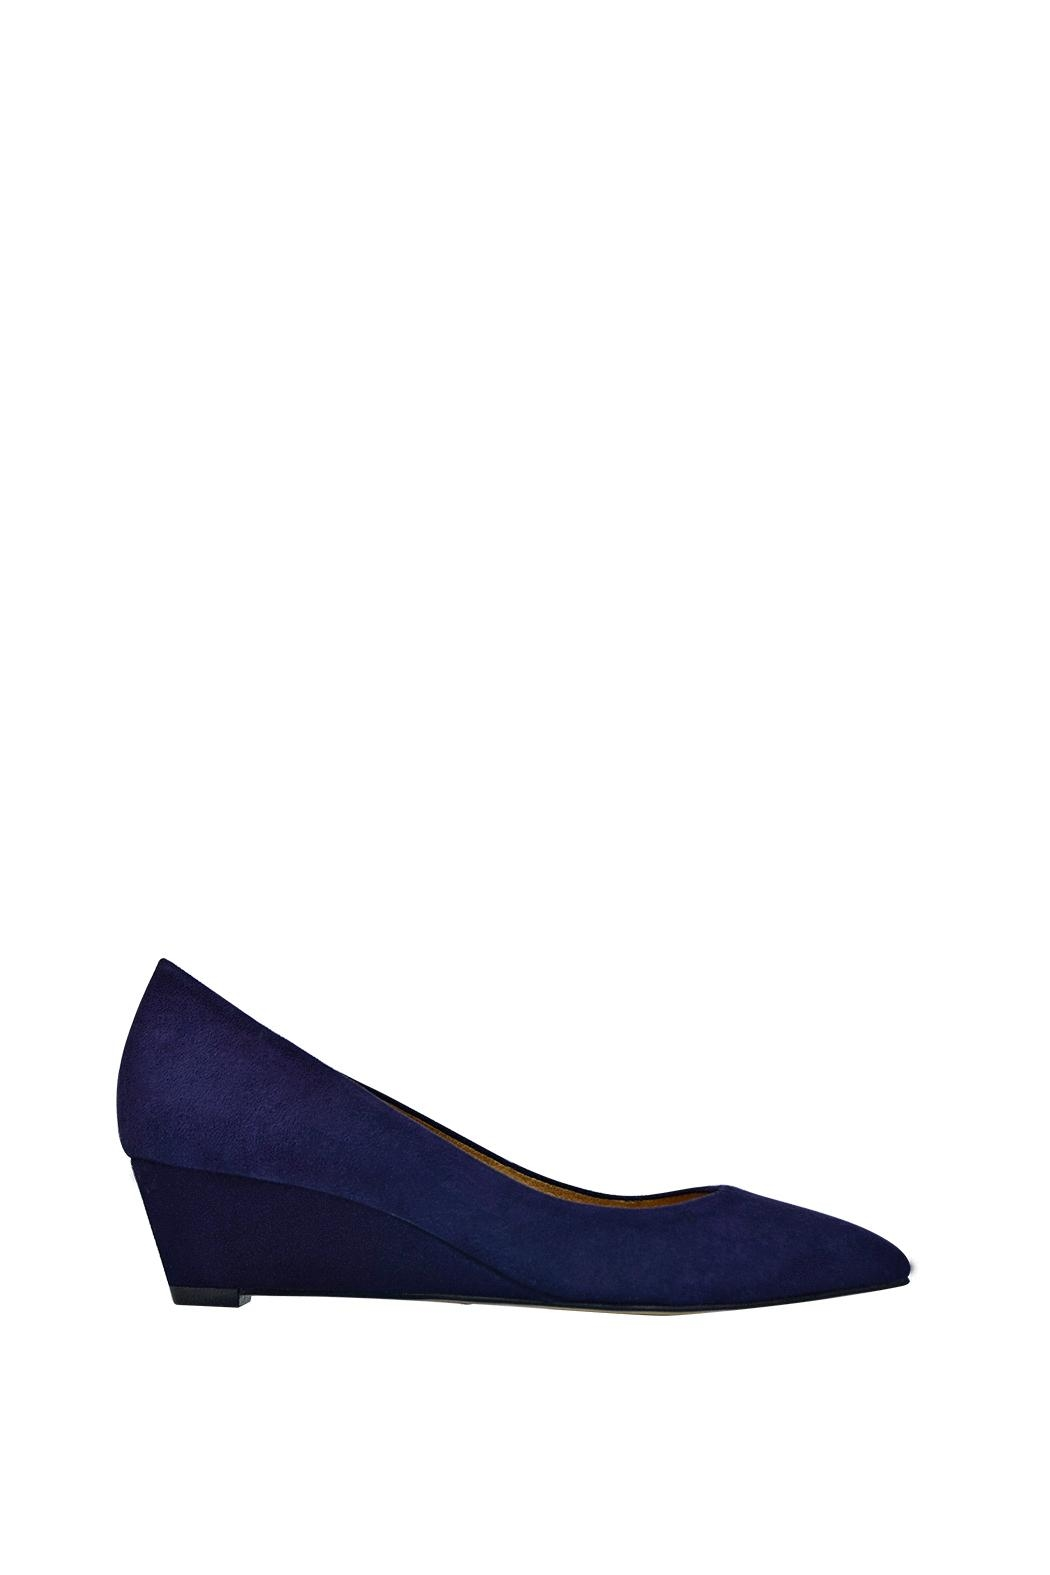 Corso Como Blue Suede Wedge - Front Full Image